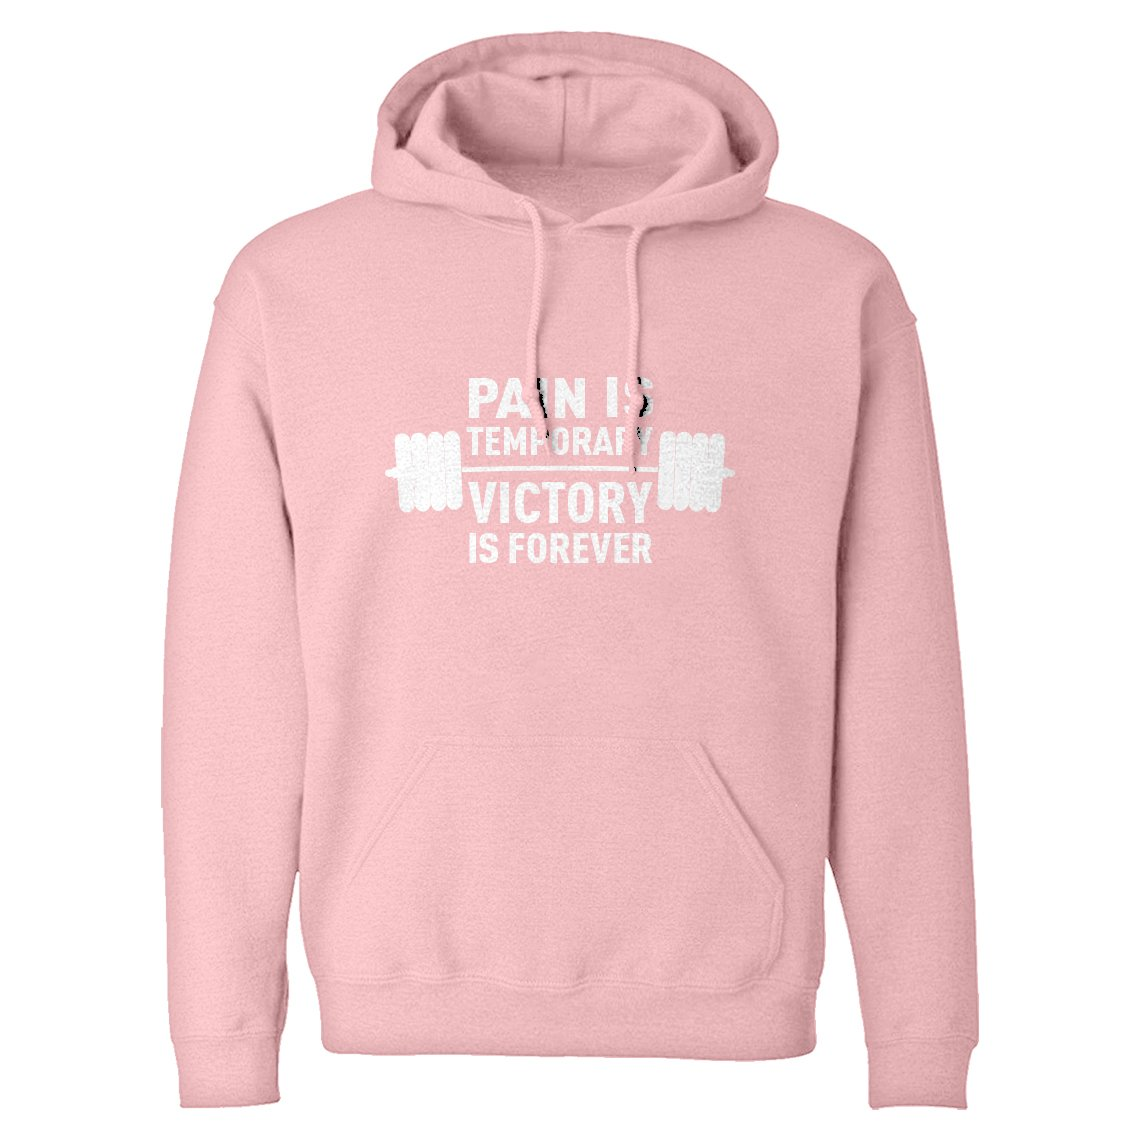 Indica Plateau Hoodie Pain is Temporary Victory is Forever Large Light Pink Hooded Sweatshirt